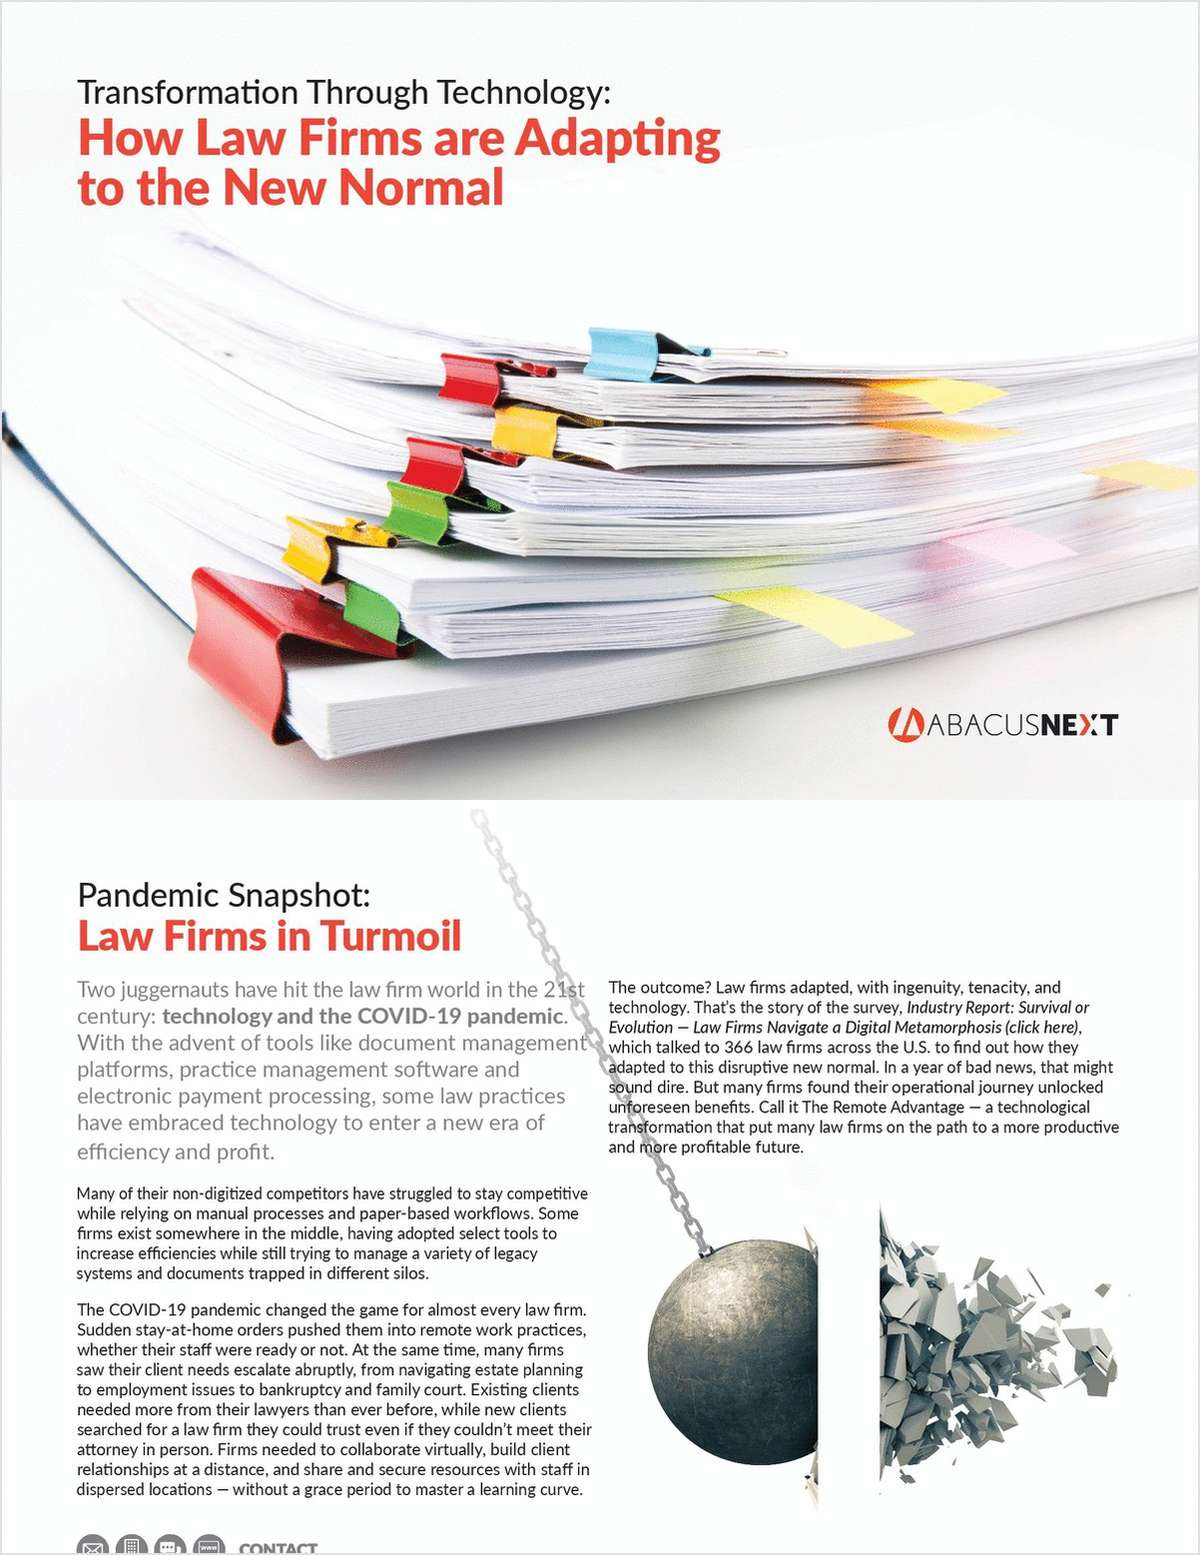 How have law firms adapted to the seismic impacts of technology and the COVID-19 pandemic? This eBook summarizes findings from that exact question posed to 366 law firms across the country.